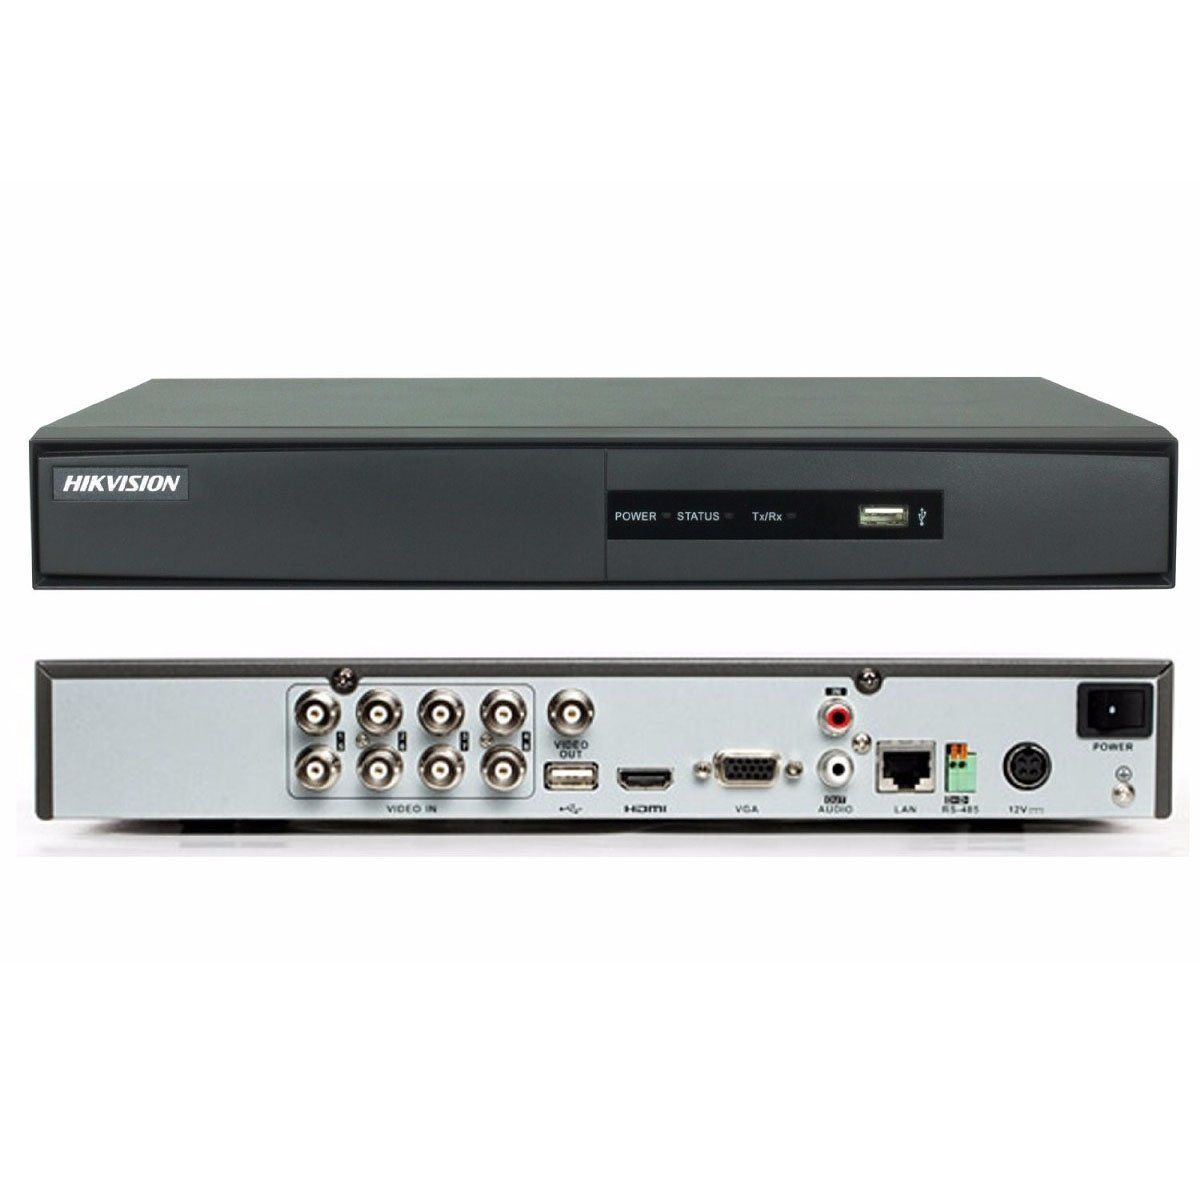 DVR 8 Canais Digital Turbo HD DS 7208HGHI-F1/N Hikvision